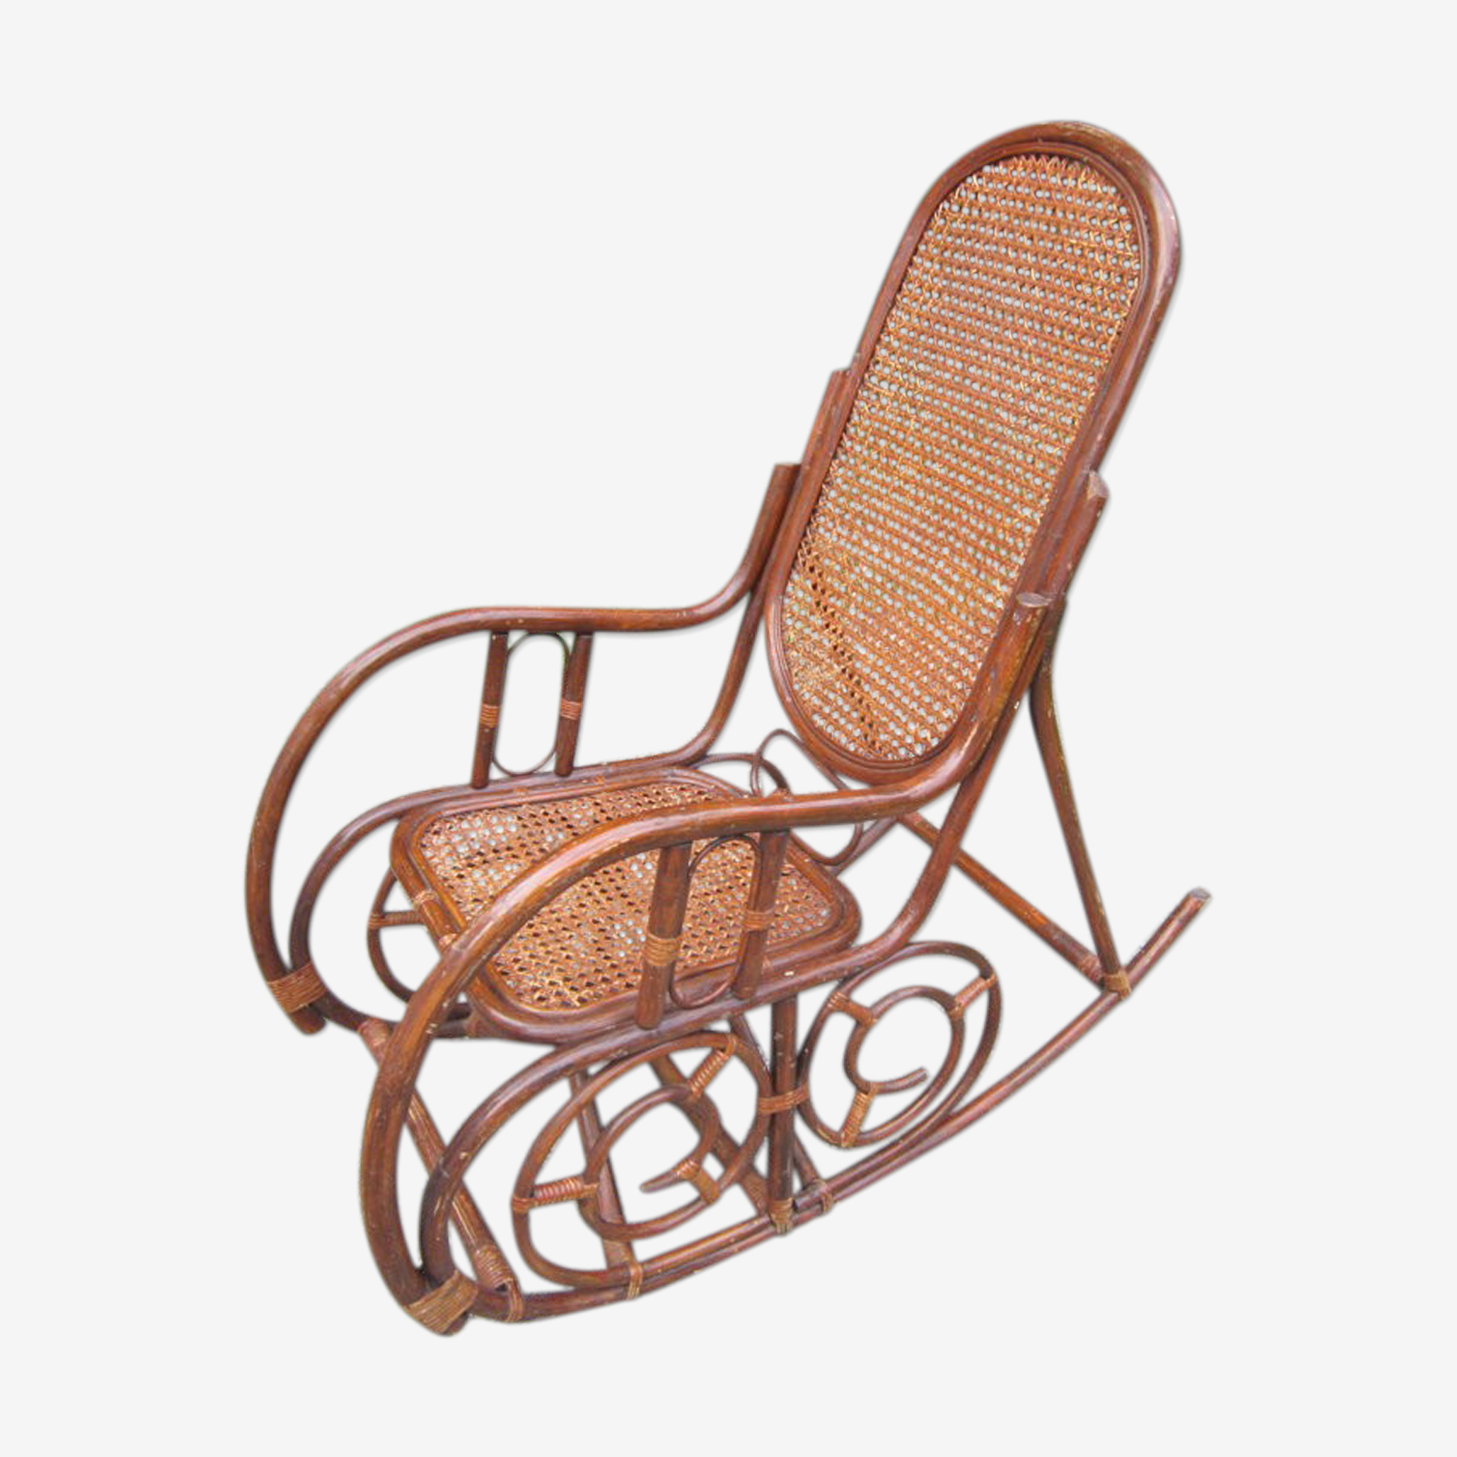 Rocking chair rotin et bambou avec cannage